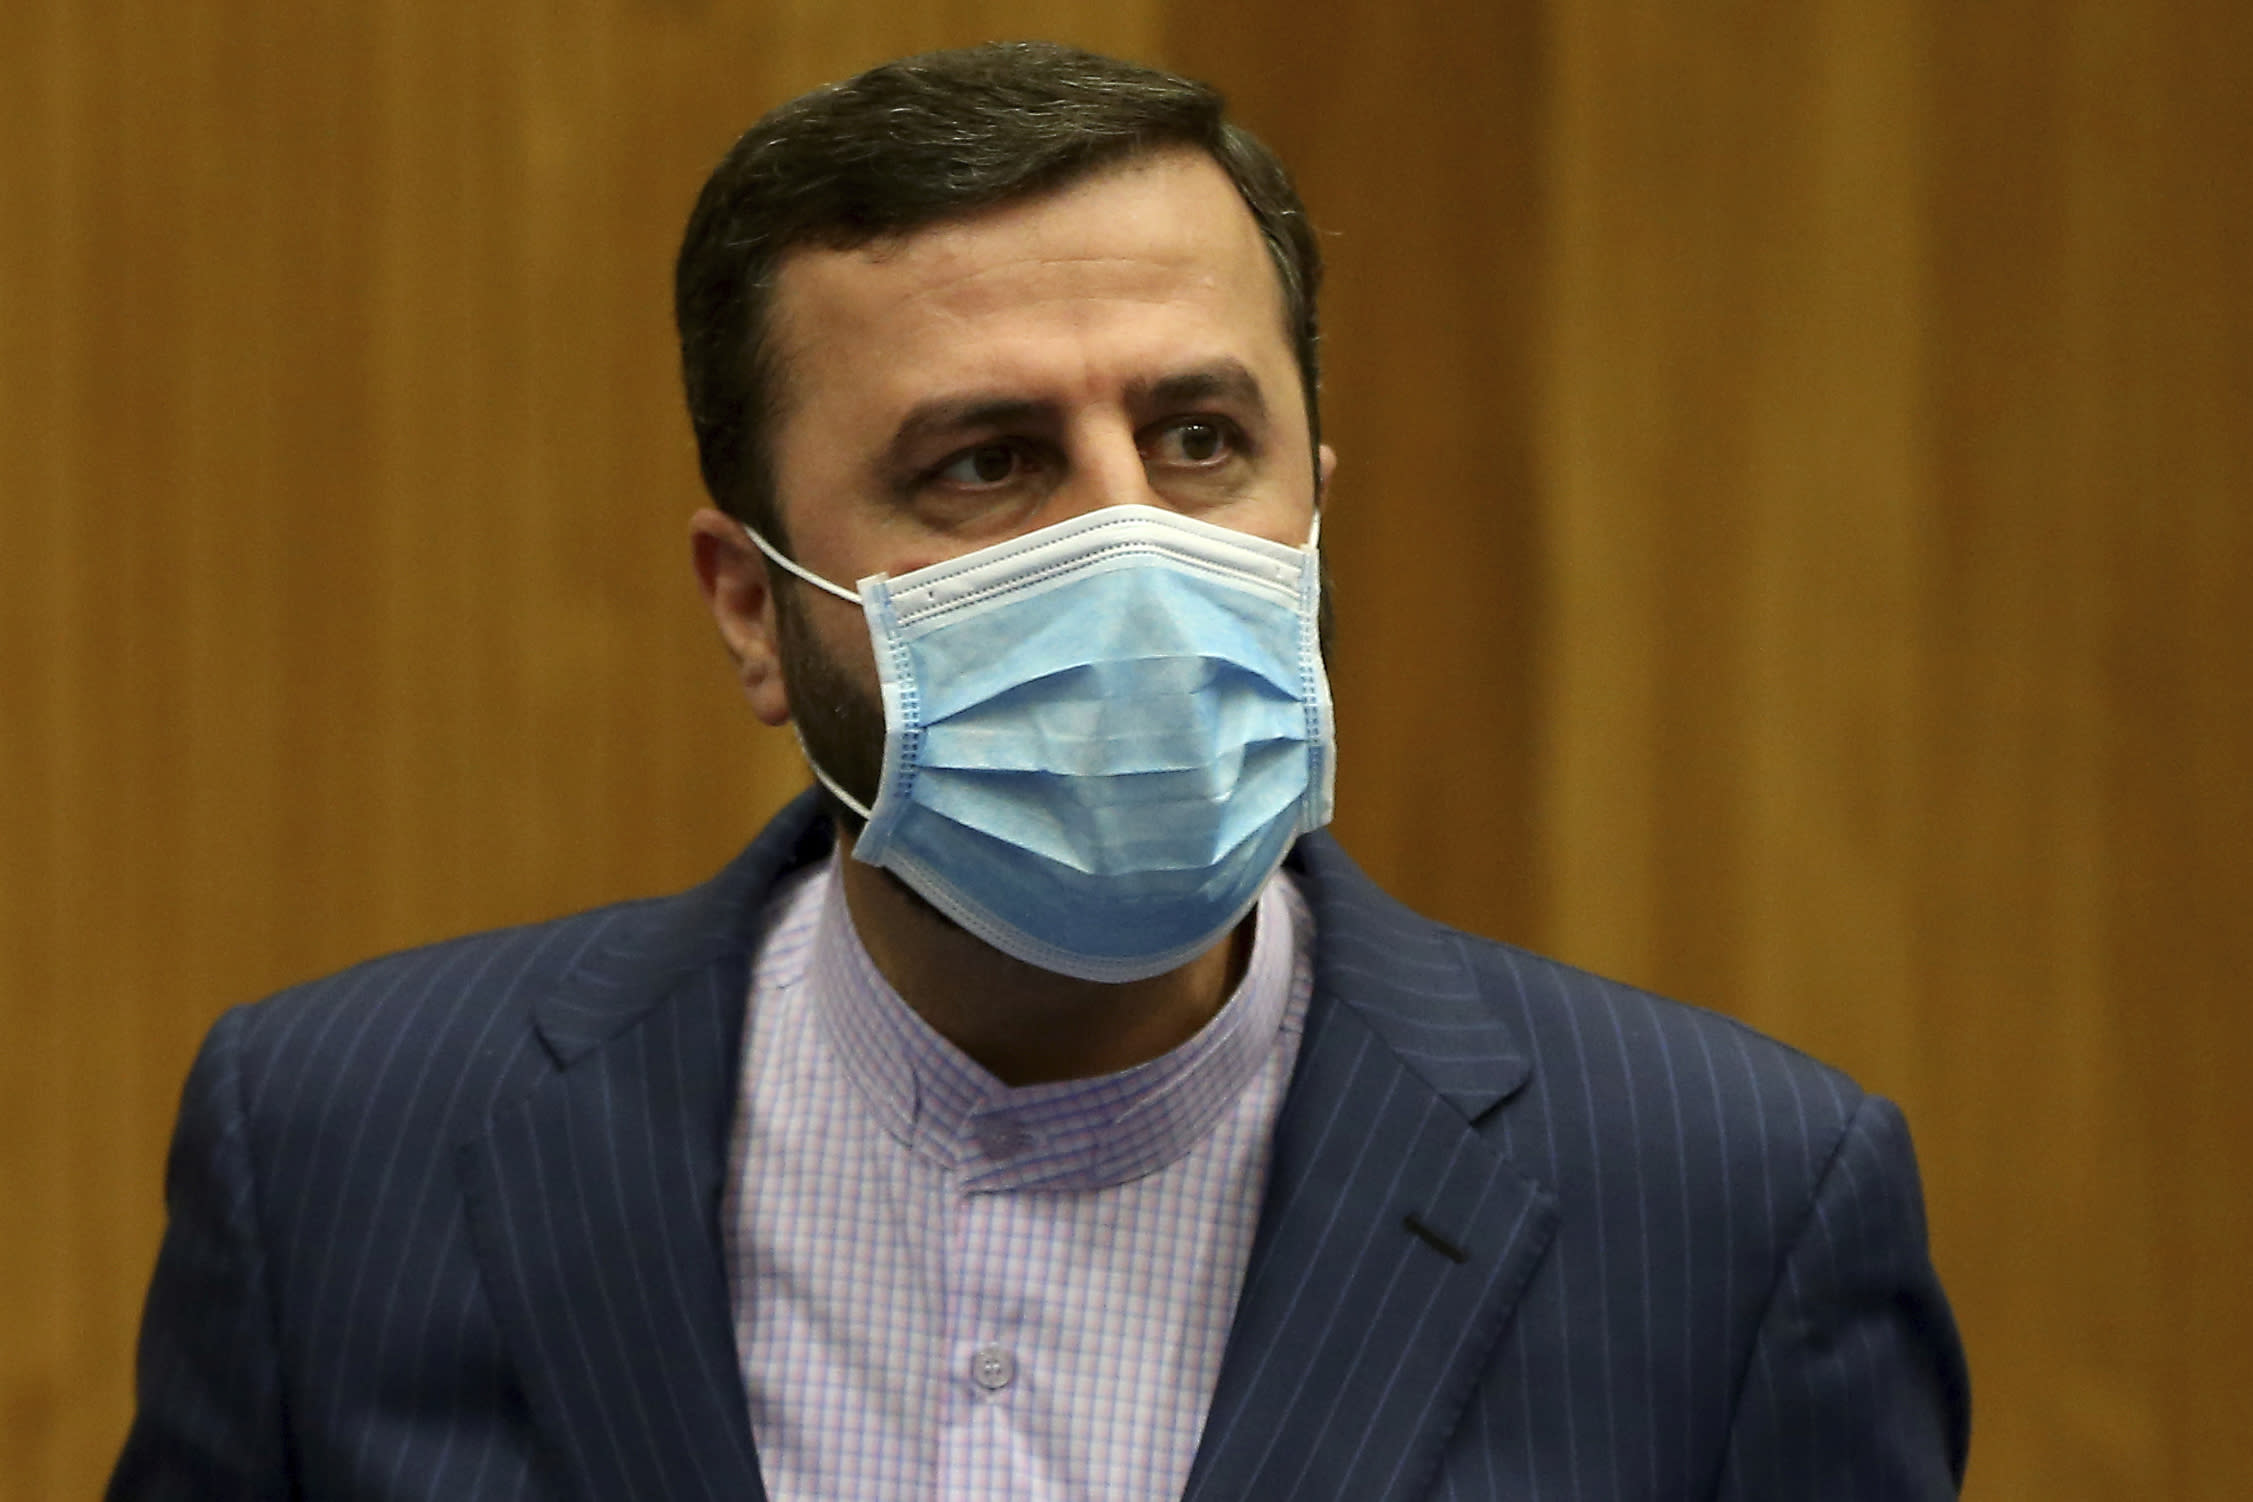 Iran's Ambassador to the International Atomic Energy Agency, IAEA, Kazem Gharibabadi with face mask arrives for the start of the IAEA board of governors meeting at the International Center in Vienna, Austria, Monday, Sept. 14, 2020. (AP Photo/Ronald Zak)